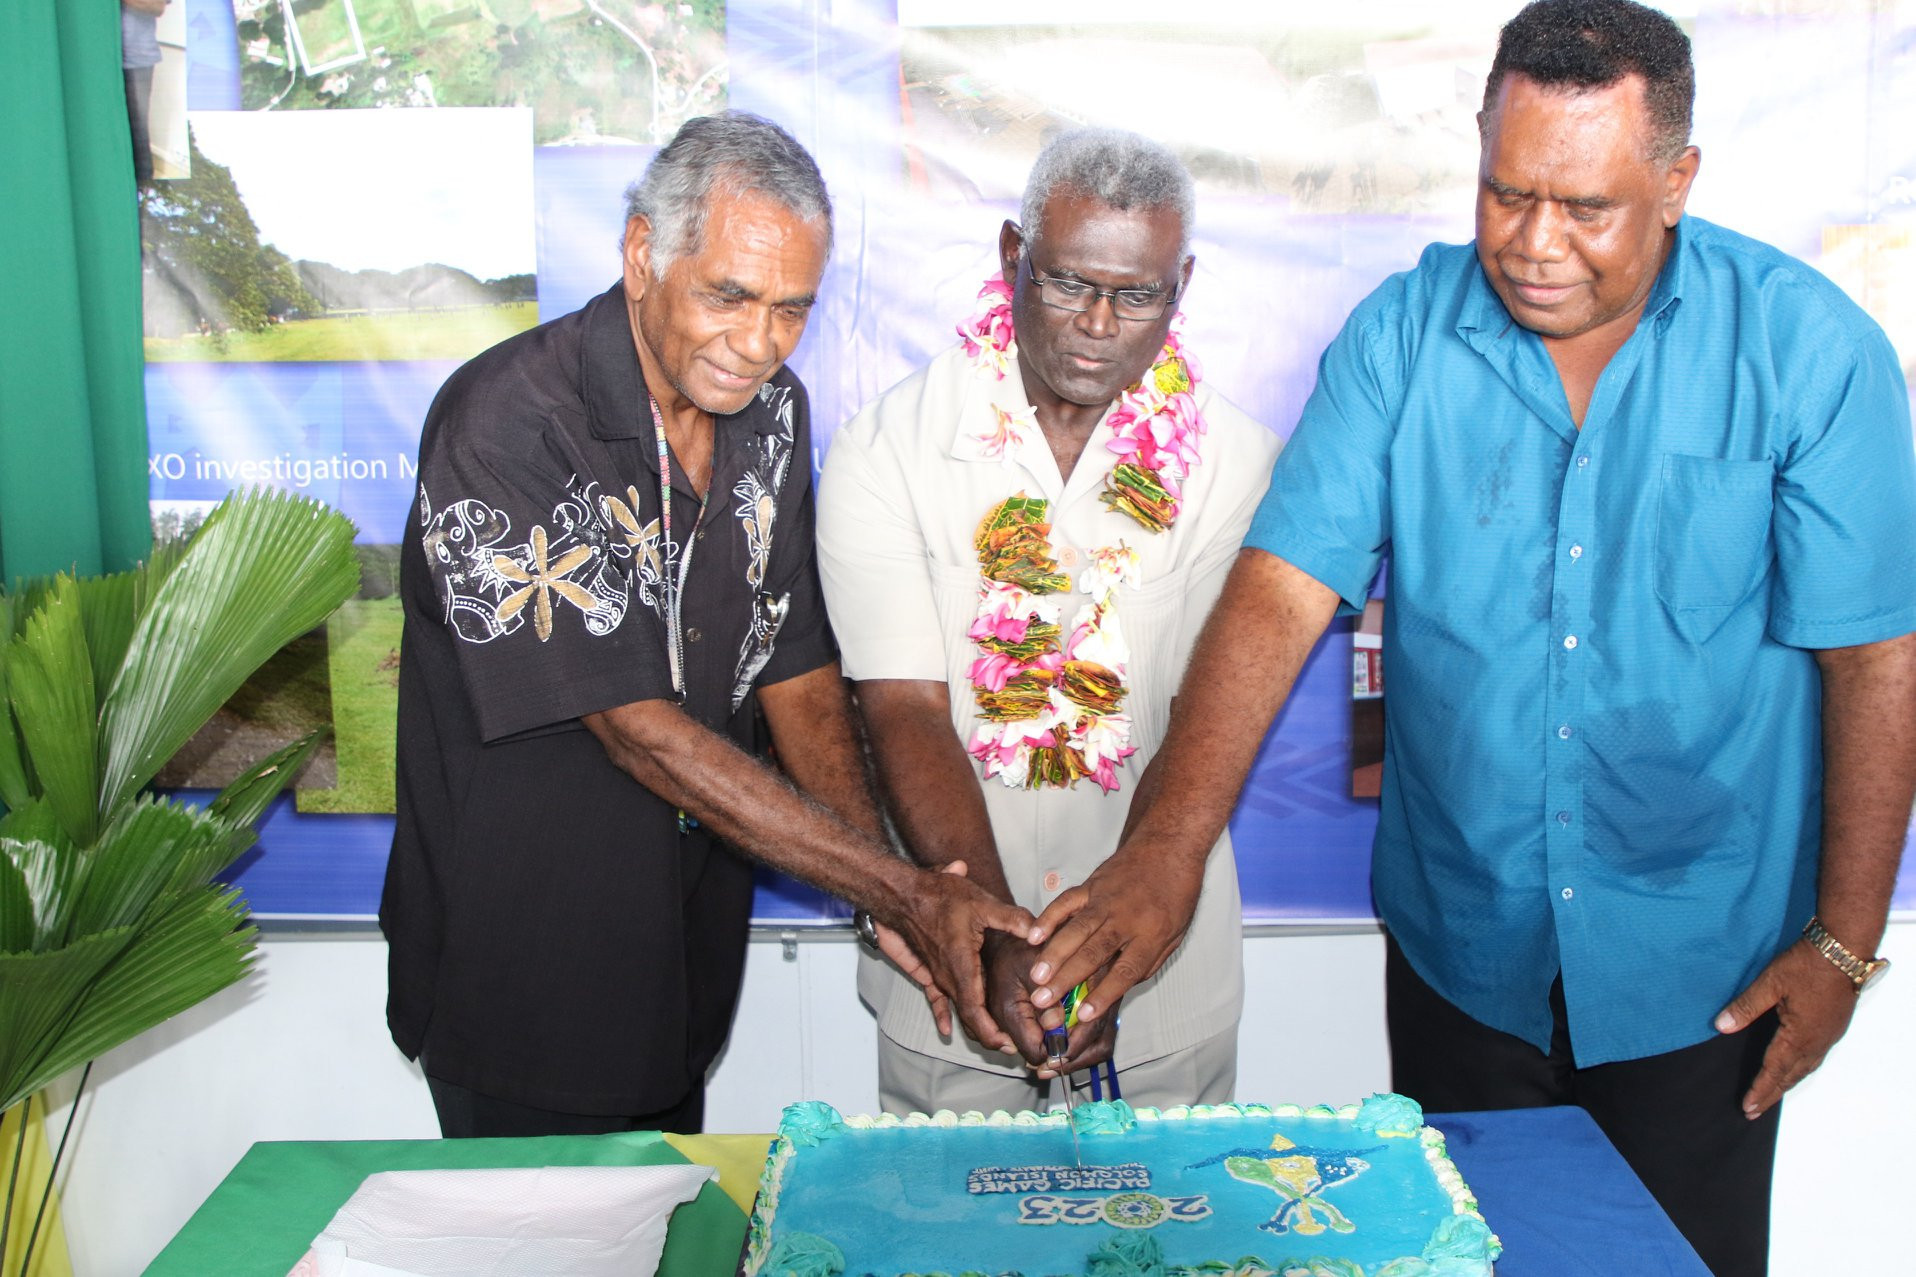 Solomon Islands Prime Minister Manasseh Sogavare, centre, officially opened the new offices for the 2023 Pacific Games in Honiara ©Solomon Islands Government